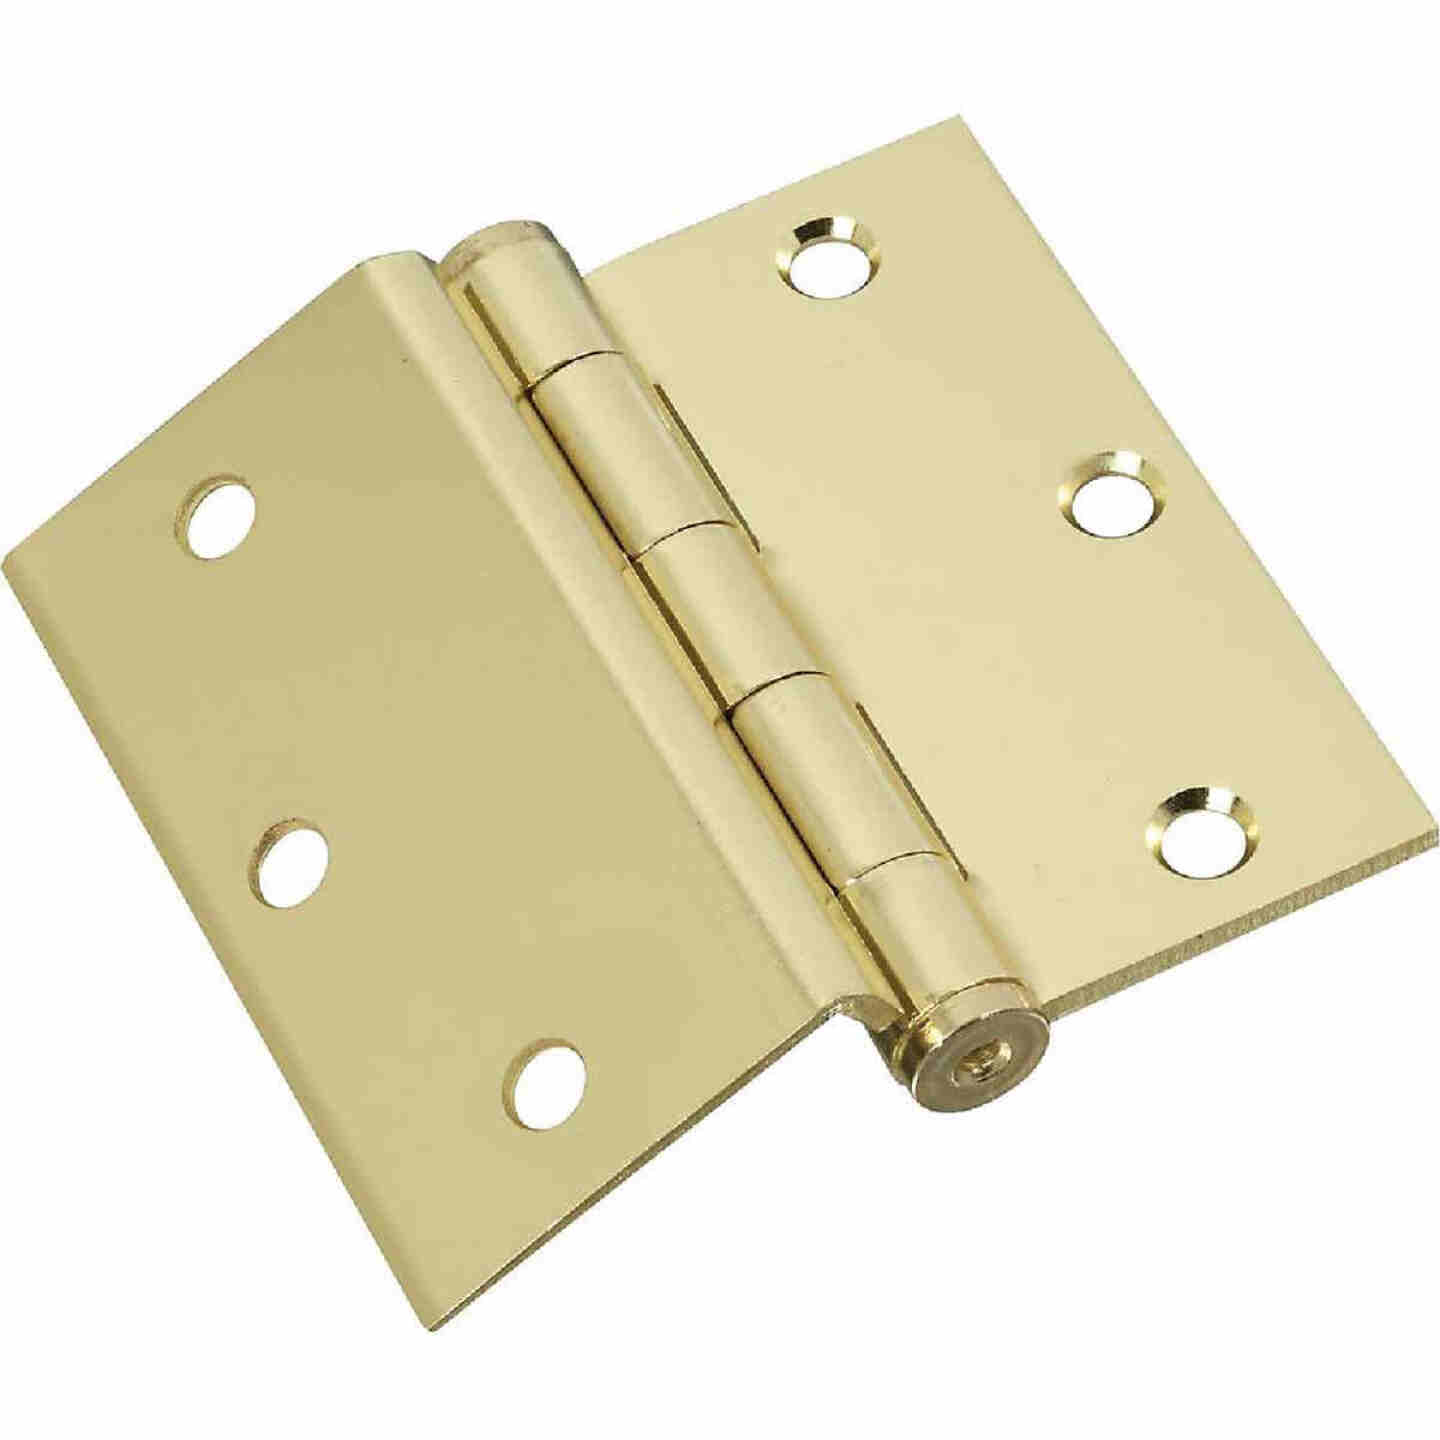 National 3-1/2 In. Square Half Surface Door Hinge (2-Pack) Image 1